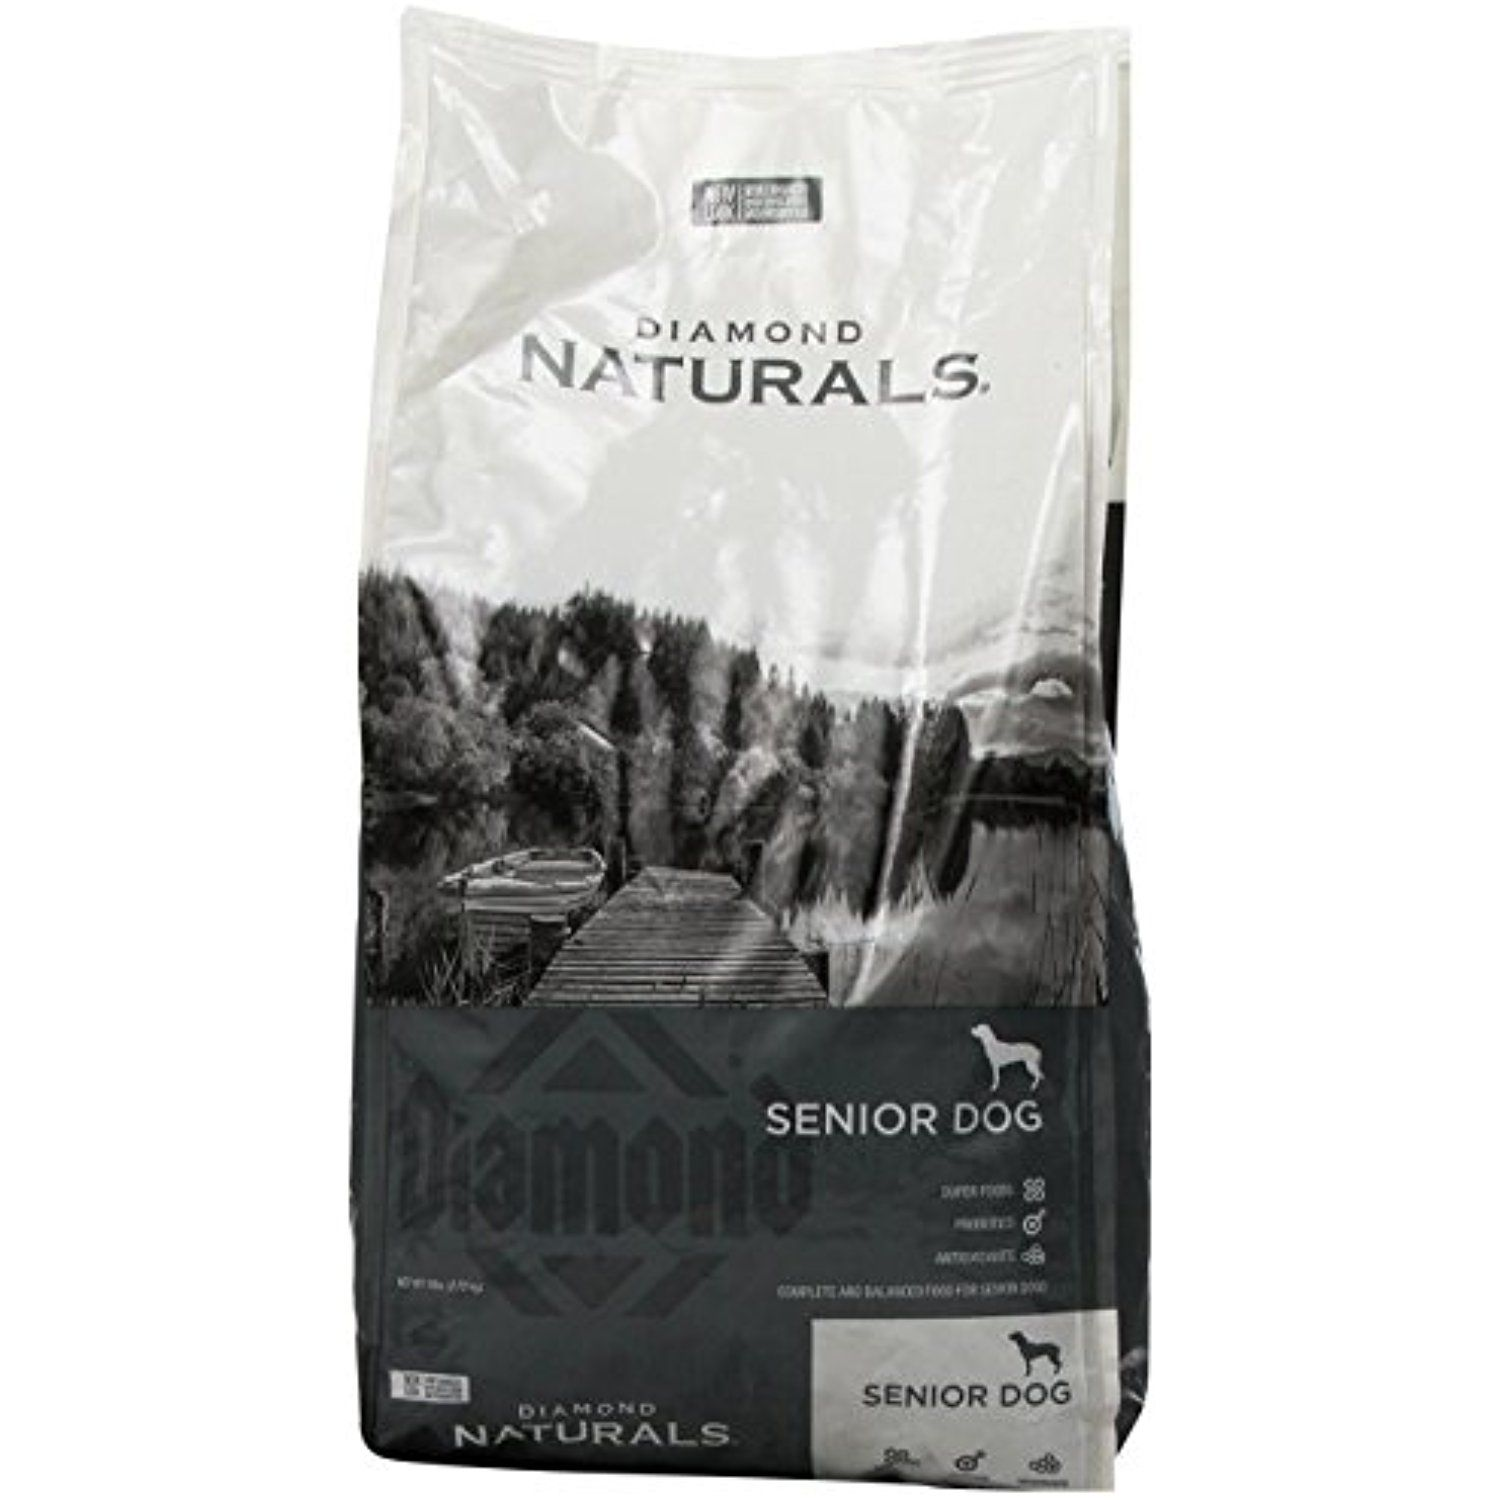 Diamond Naturals Dry Food For Senior Dogs 8 Chicken Egg